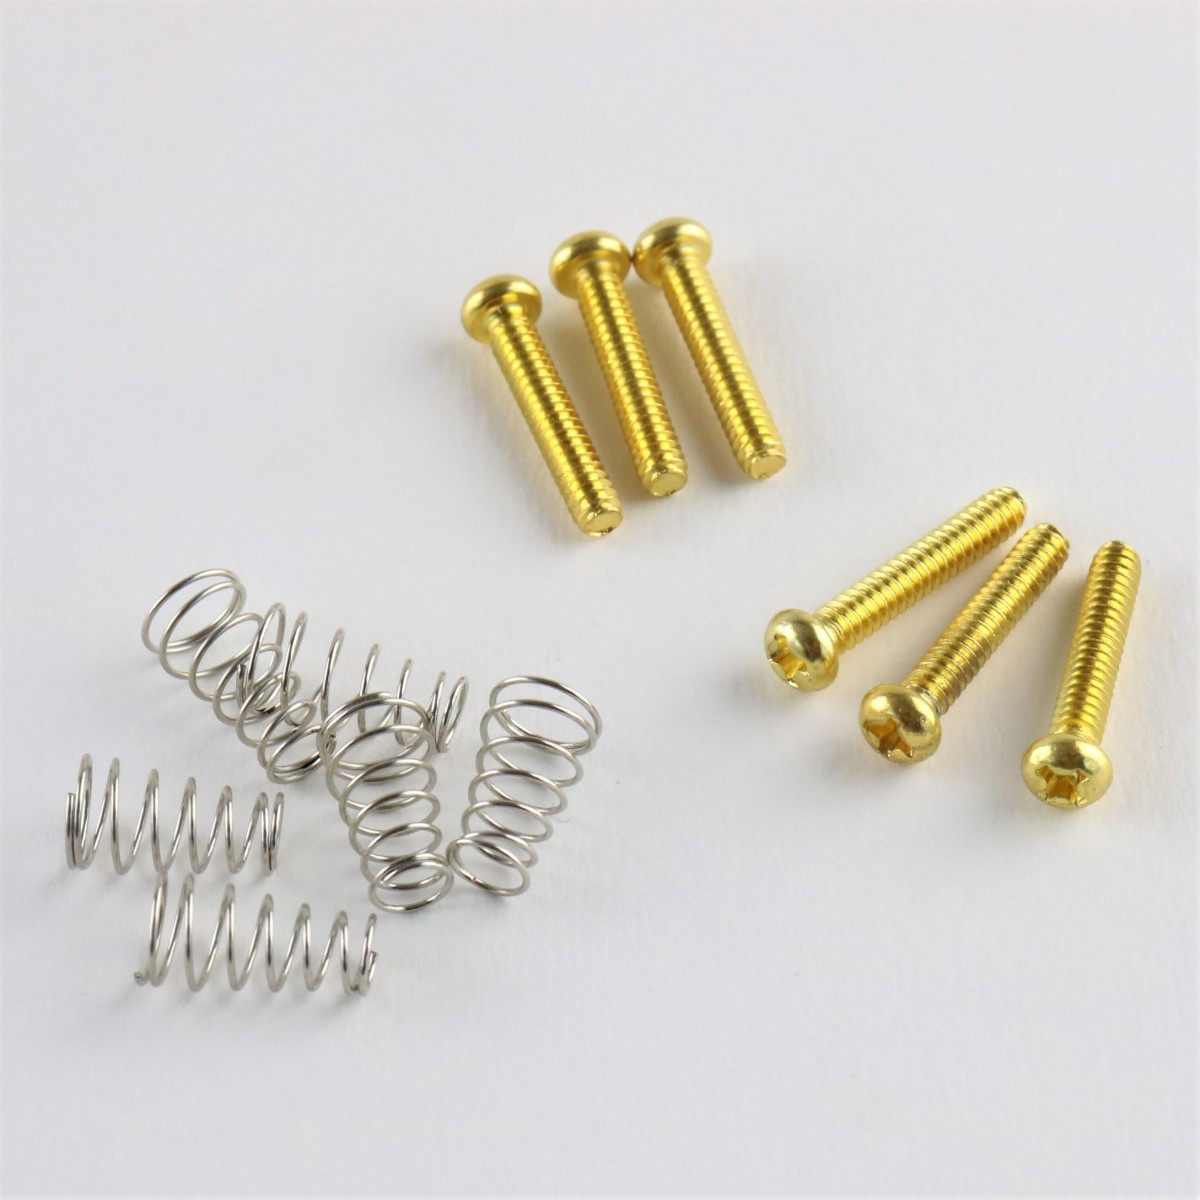 Ghs David Gilmour Red Set .0105/0.50